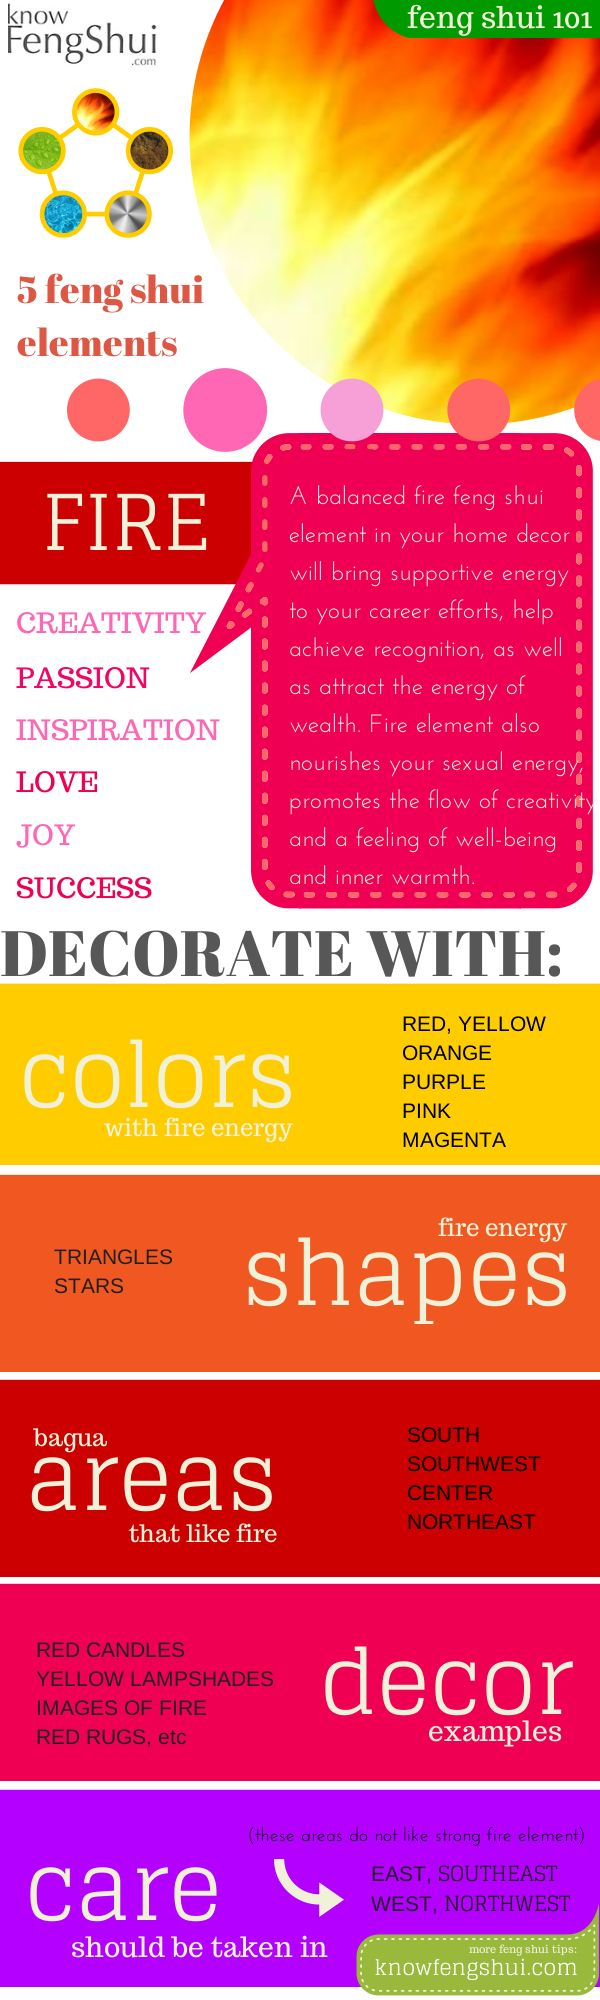 Easy Feng Shui Decorating With Fire Element Bring Passion Success And Romance Into Your